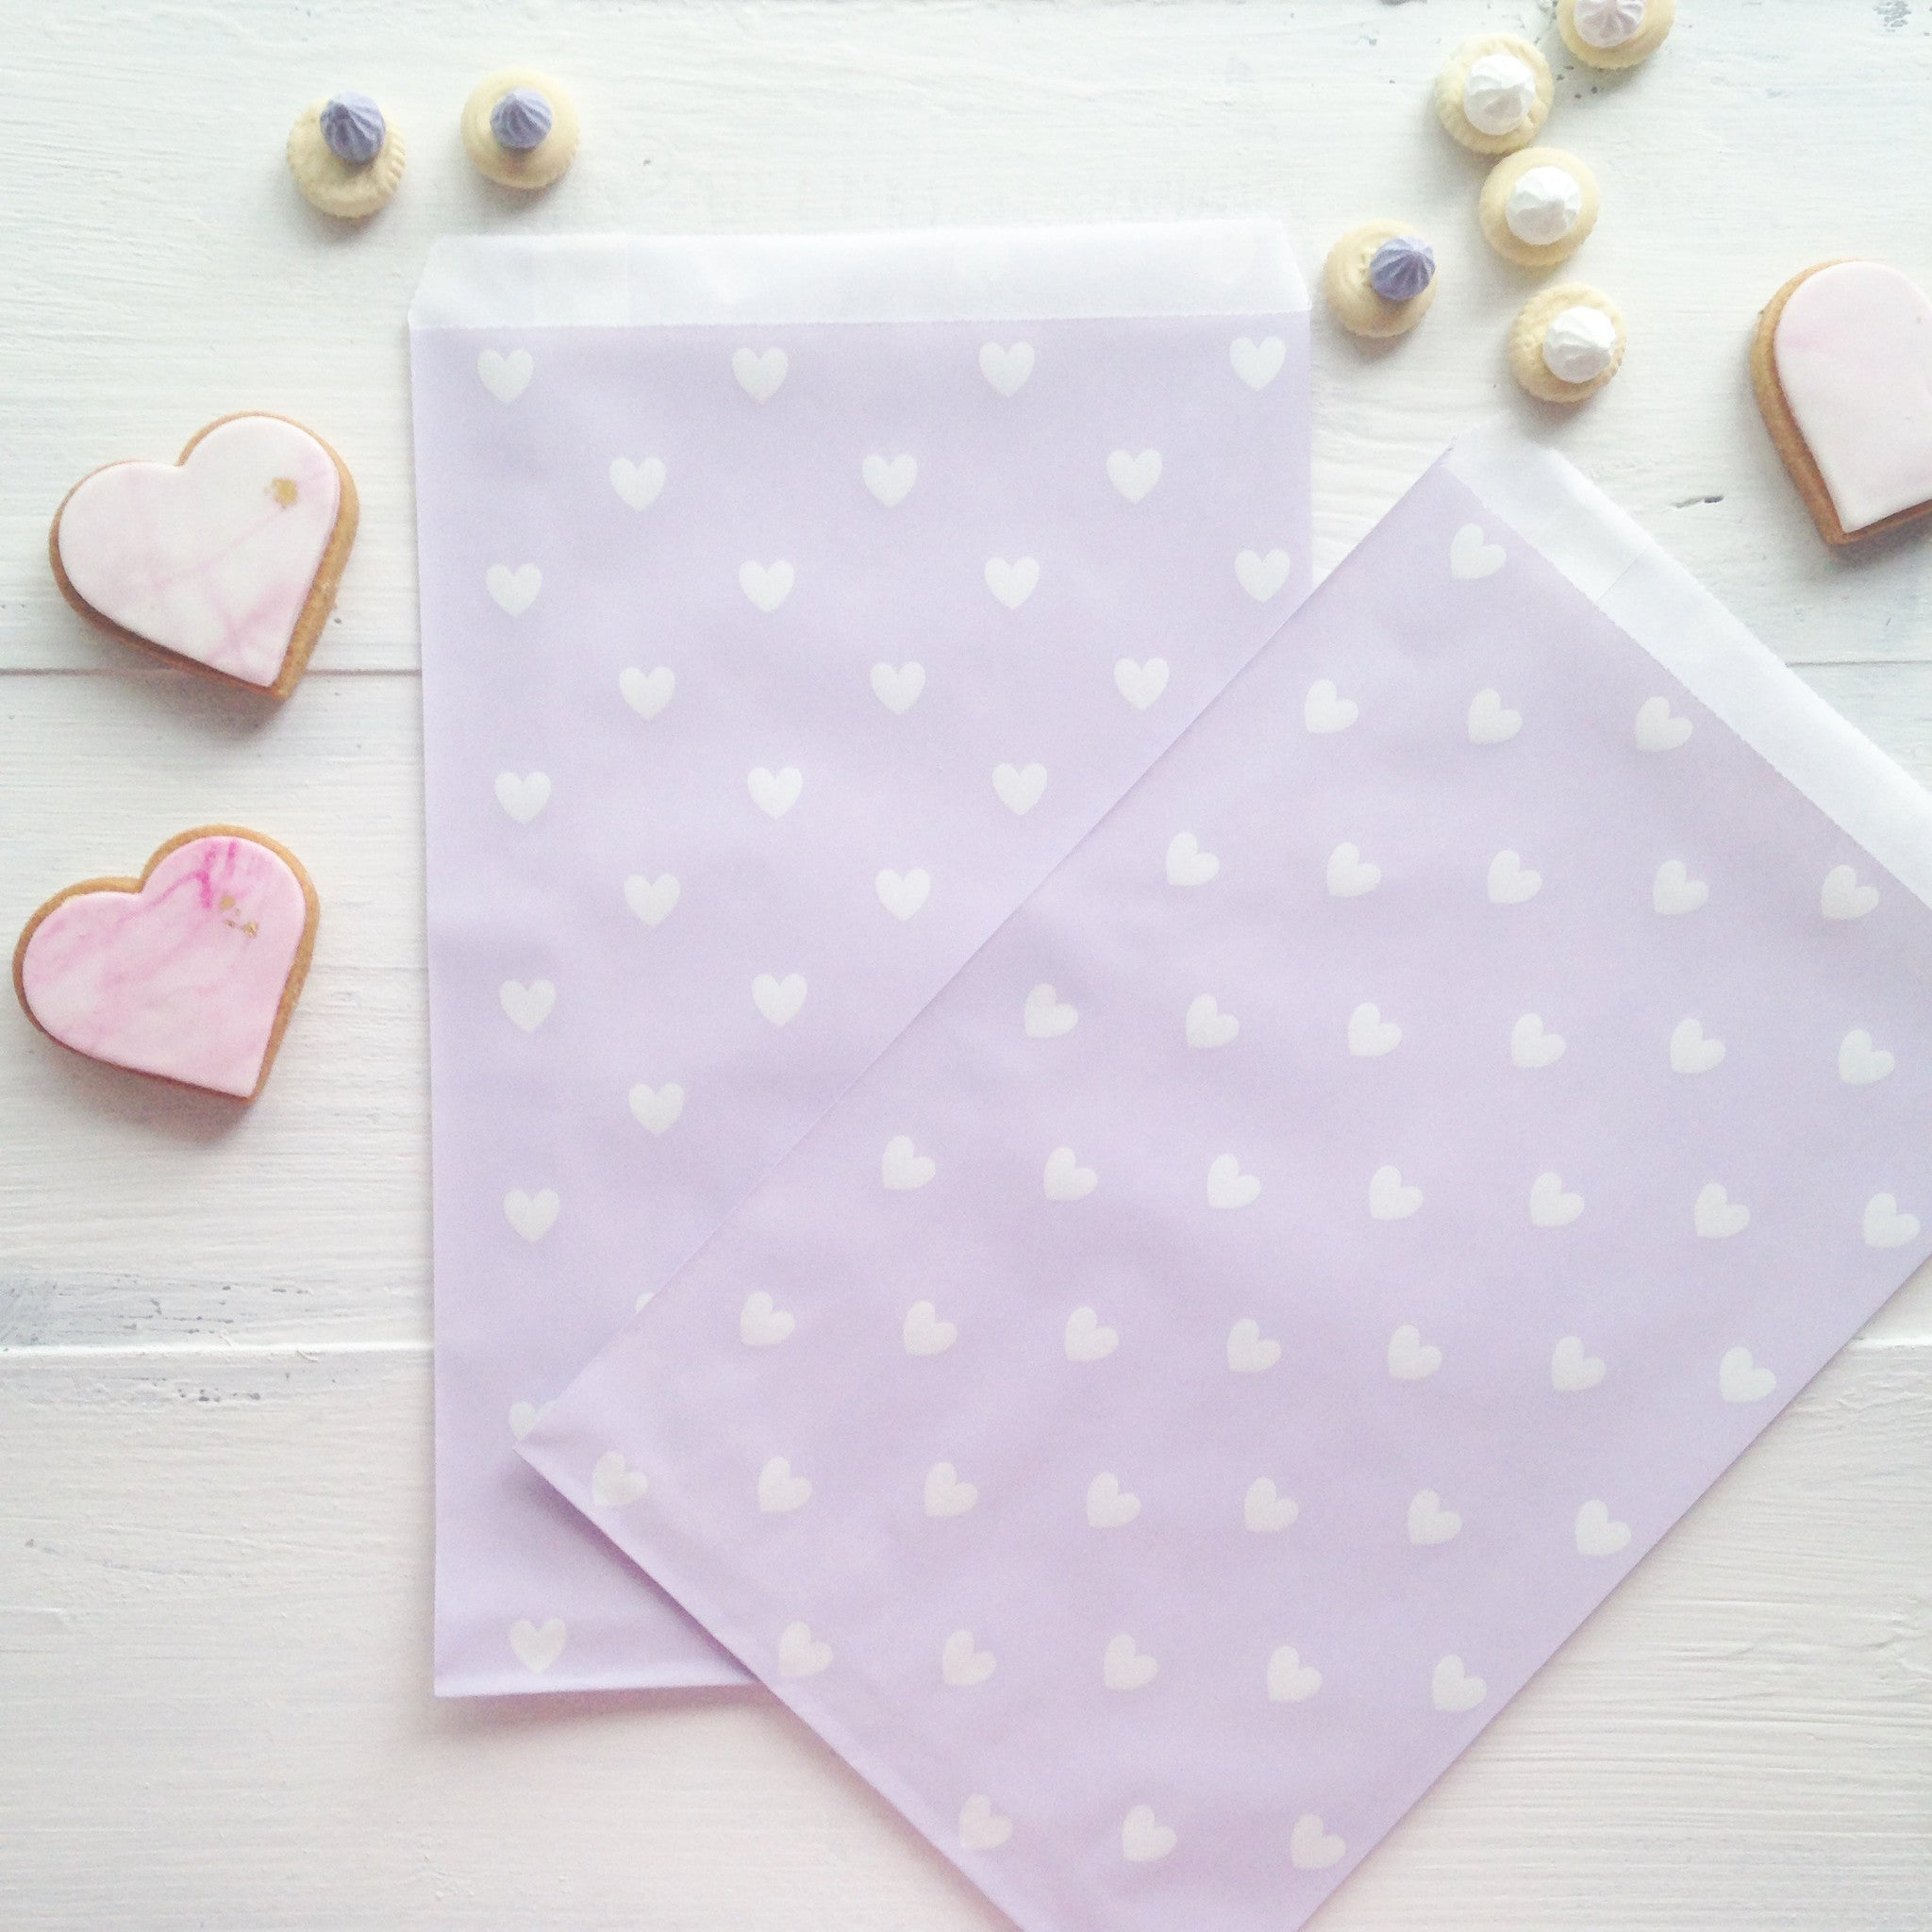 Lavender Heart Party Bags - The Sweet Hostess  - 1